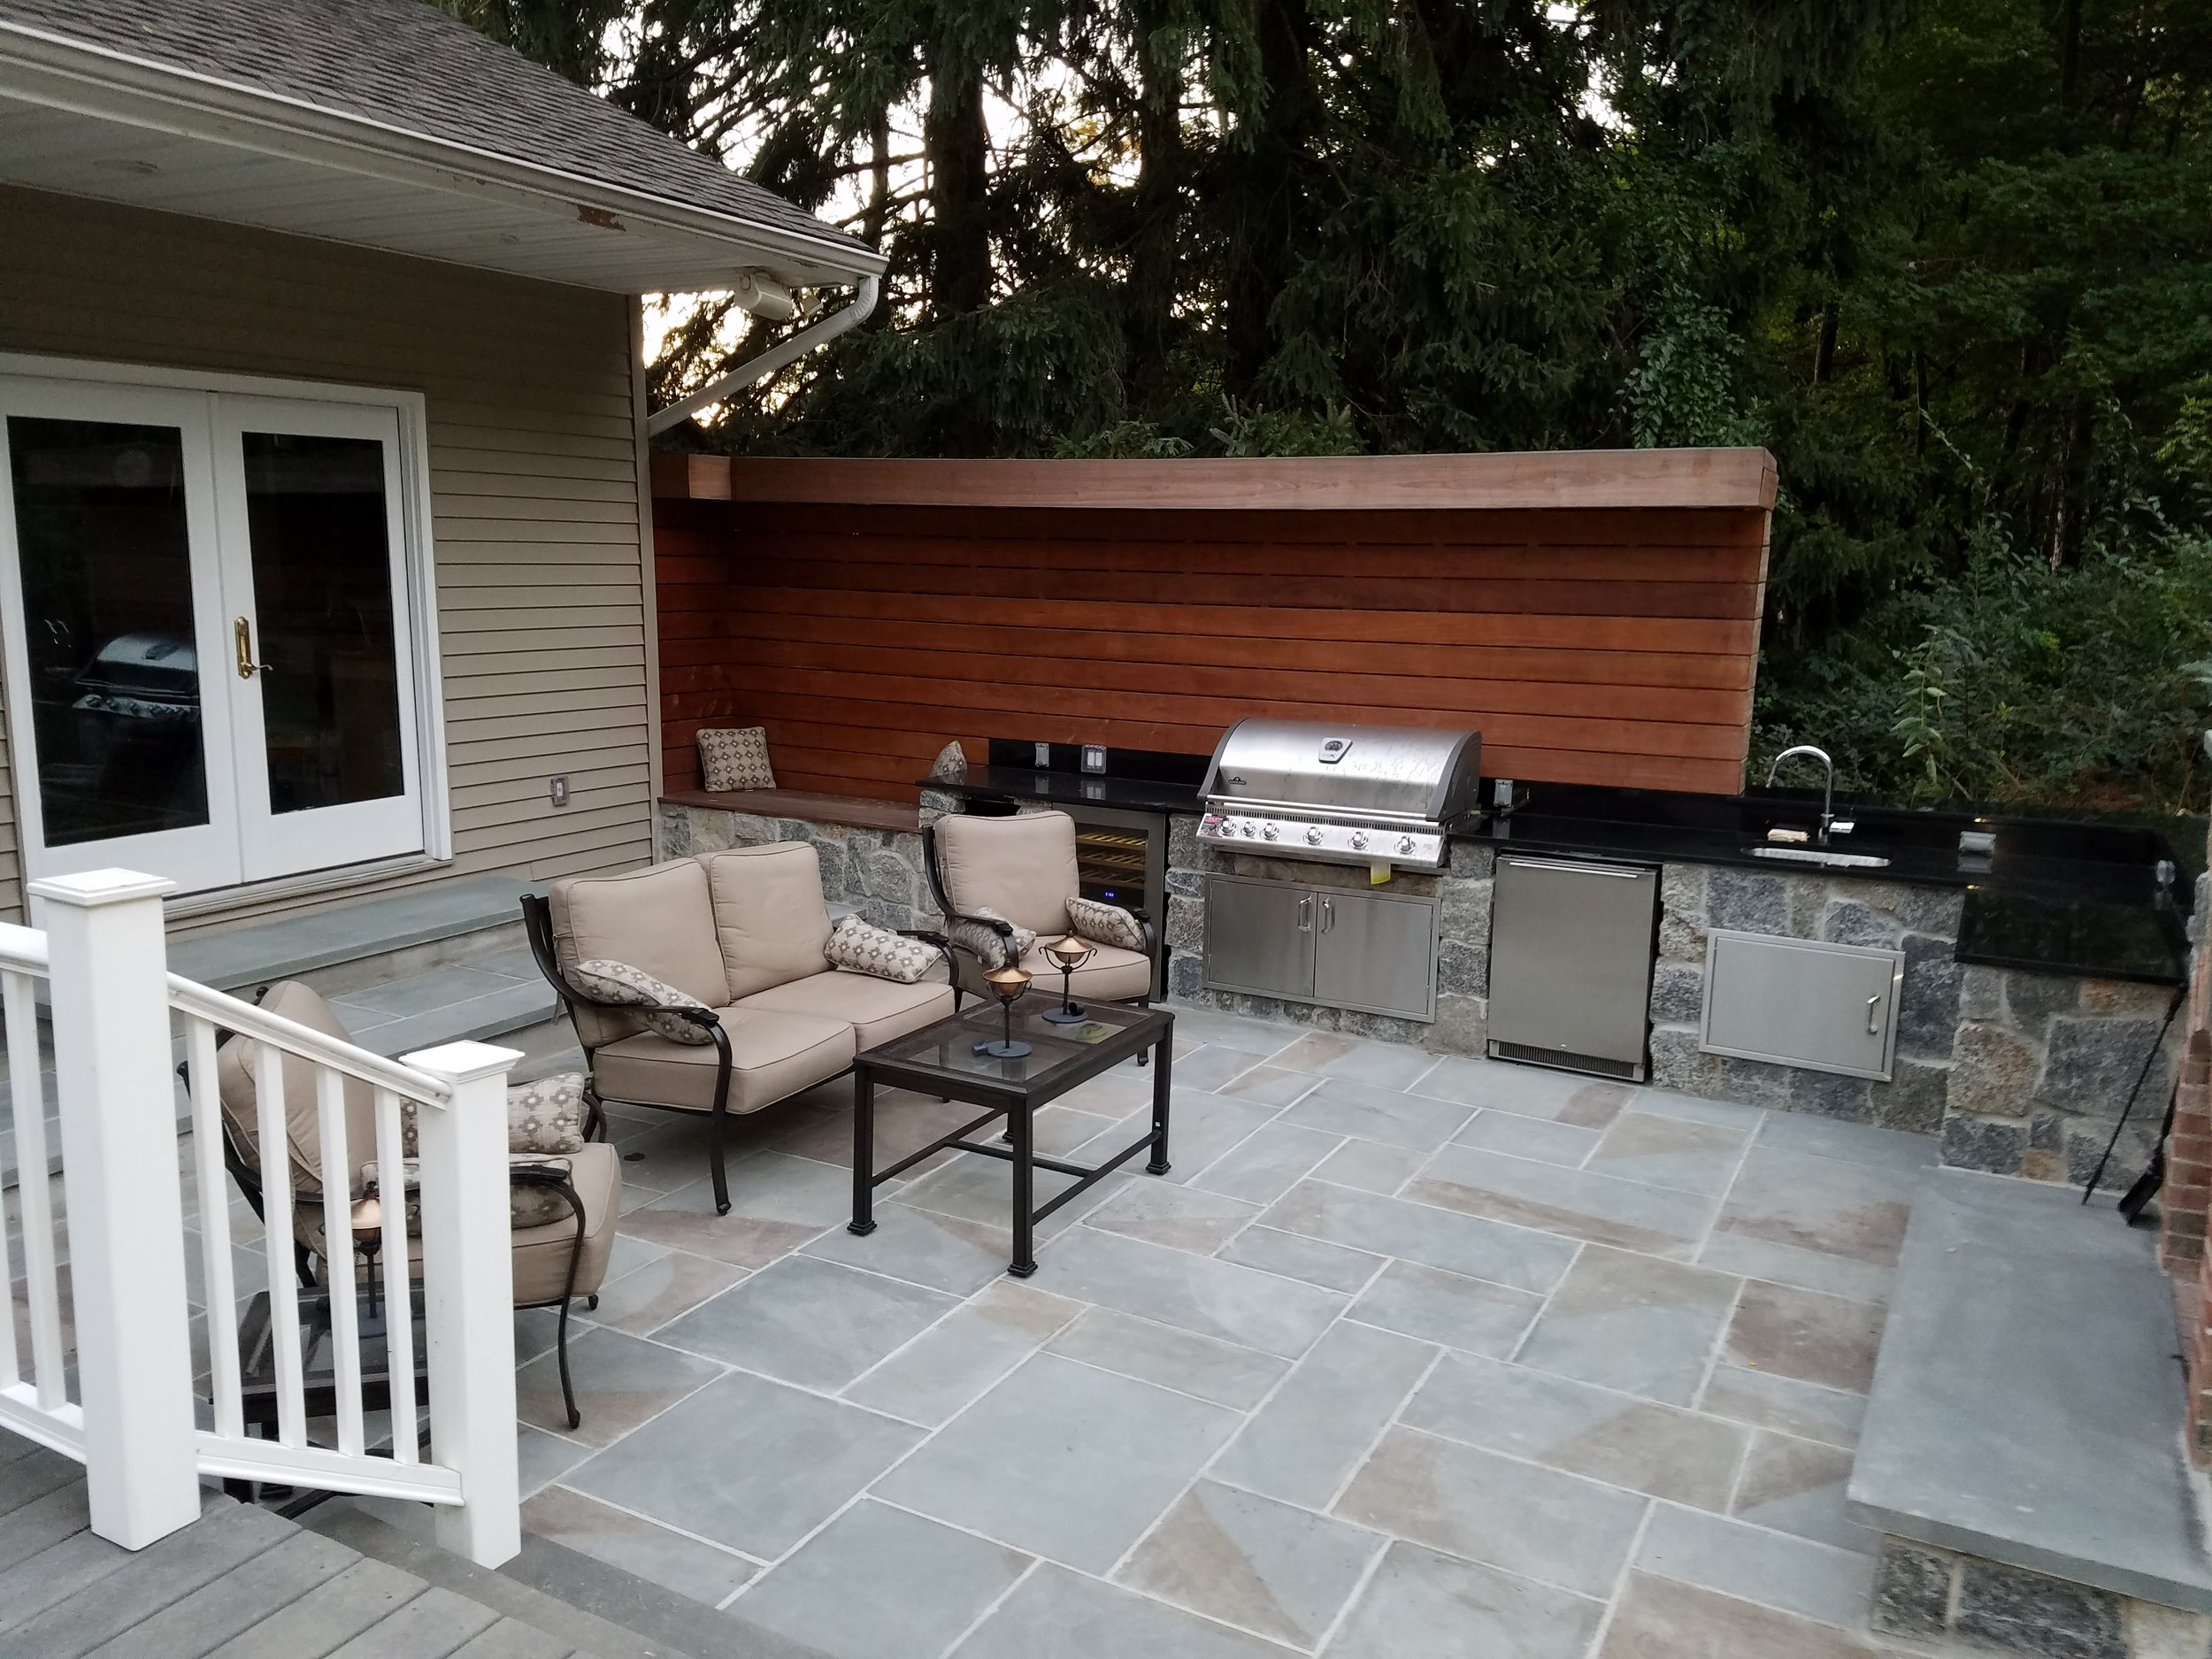 outdoor patio    type:  exterior   year:  2016   location:  new jersey